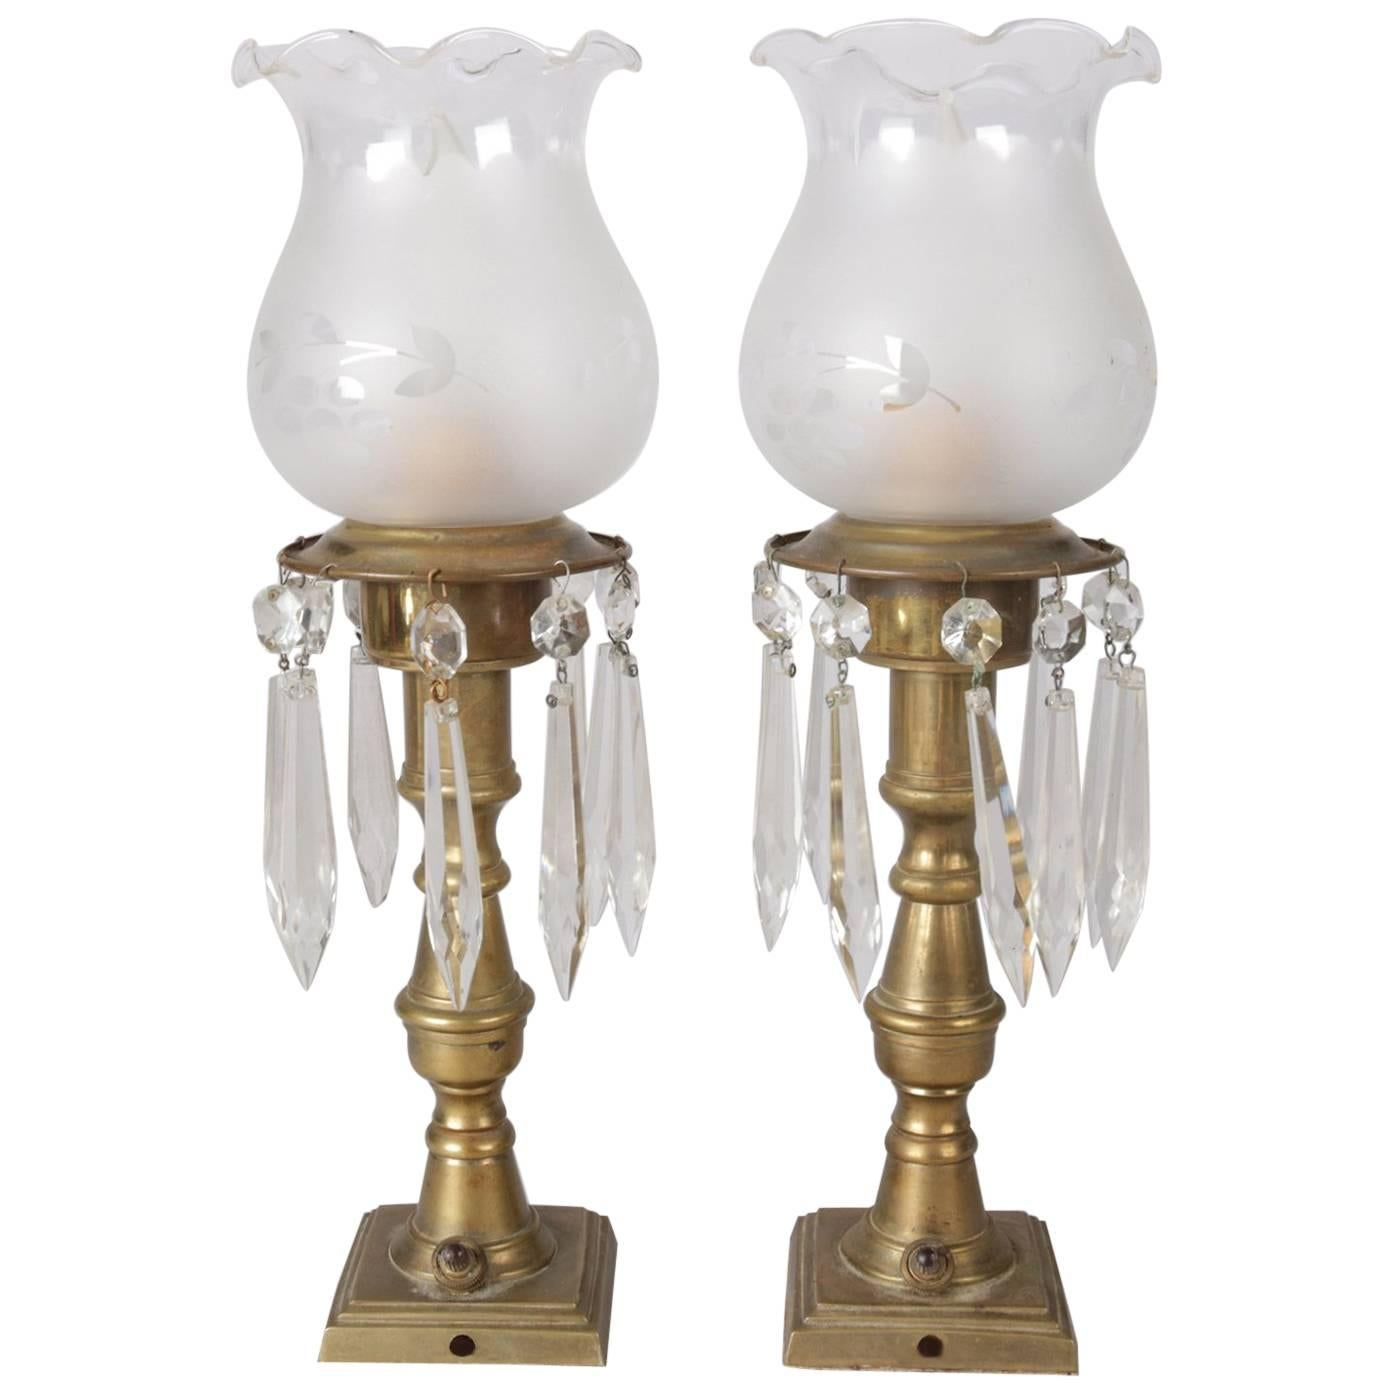 Charming Pair Of Petite Electrified Sinumbra Style Brass And Crystal Boudoir Lamps  For Sale